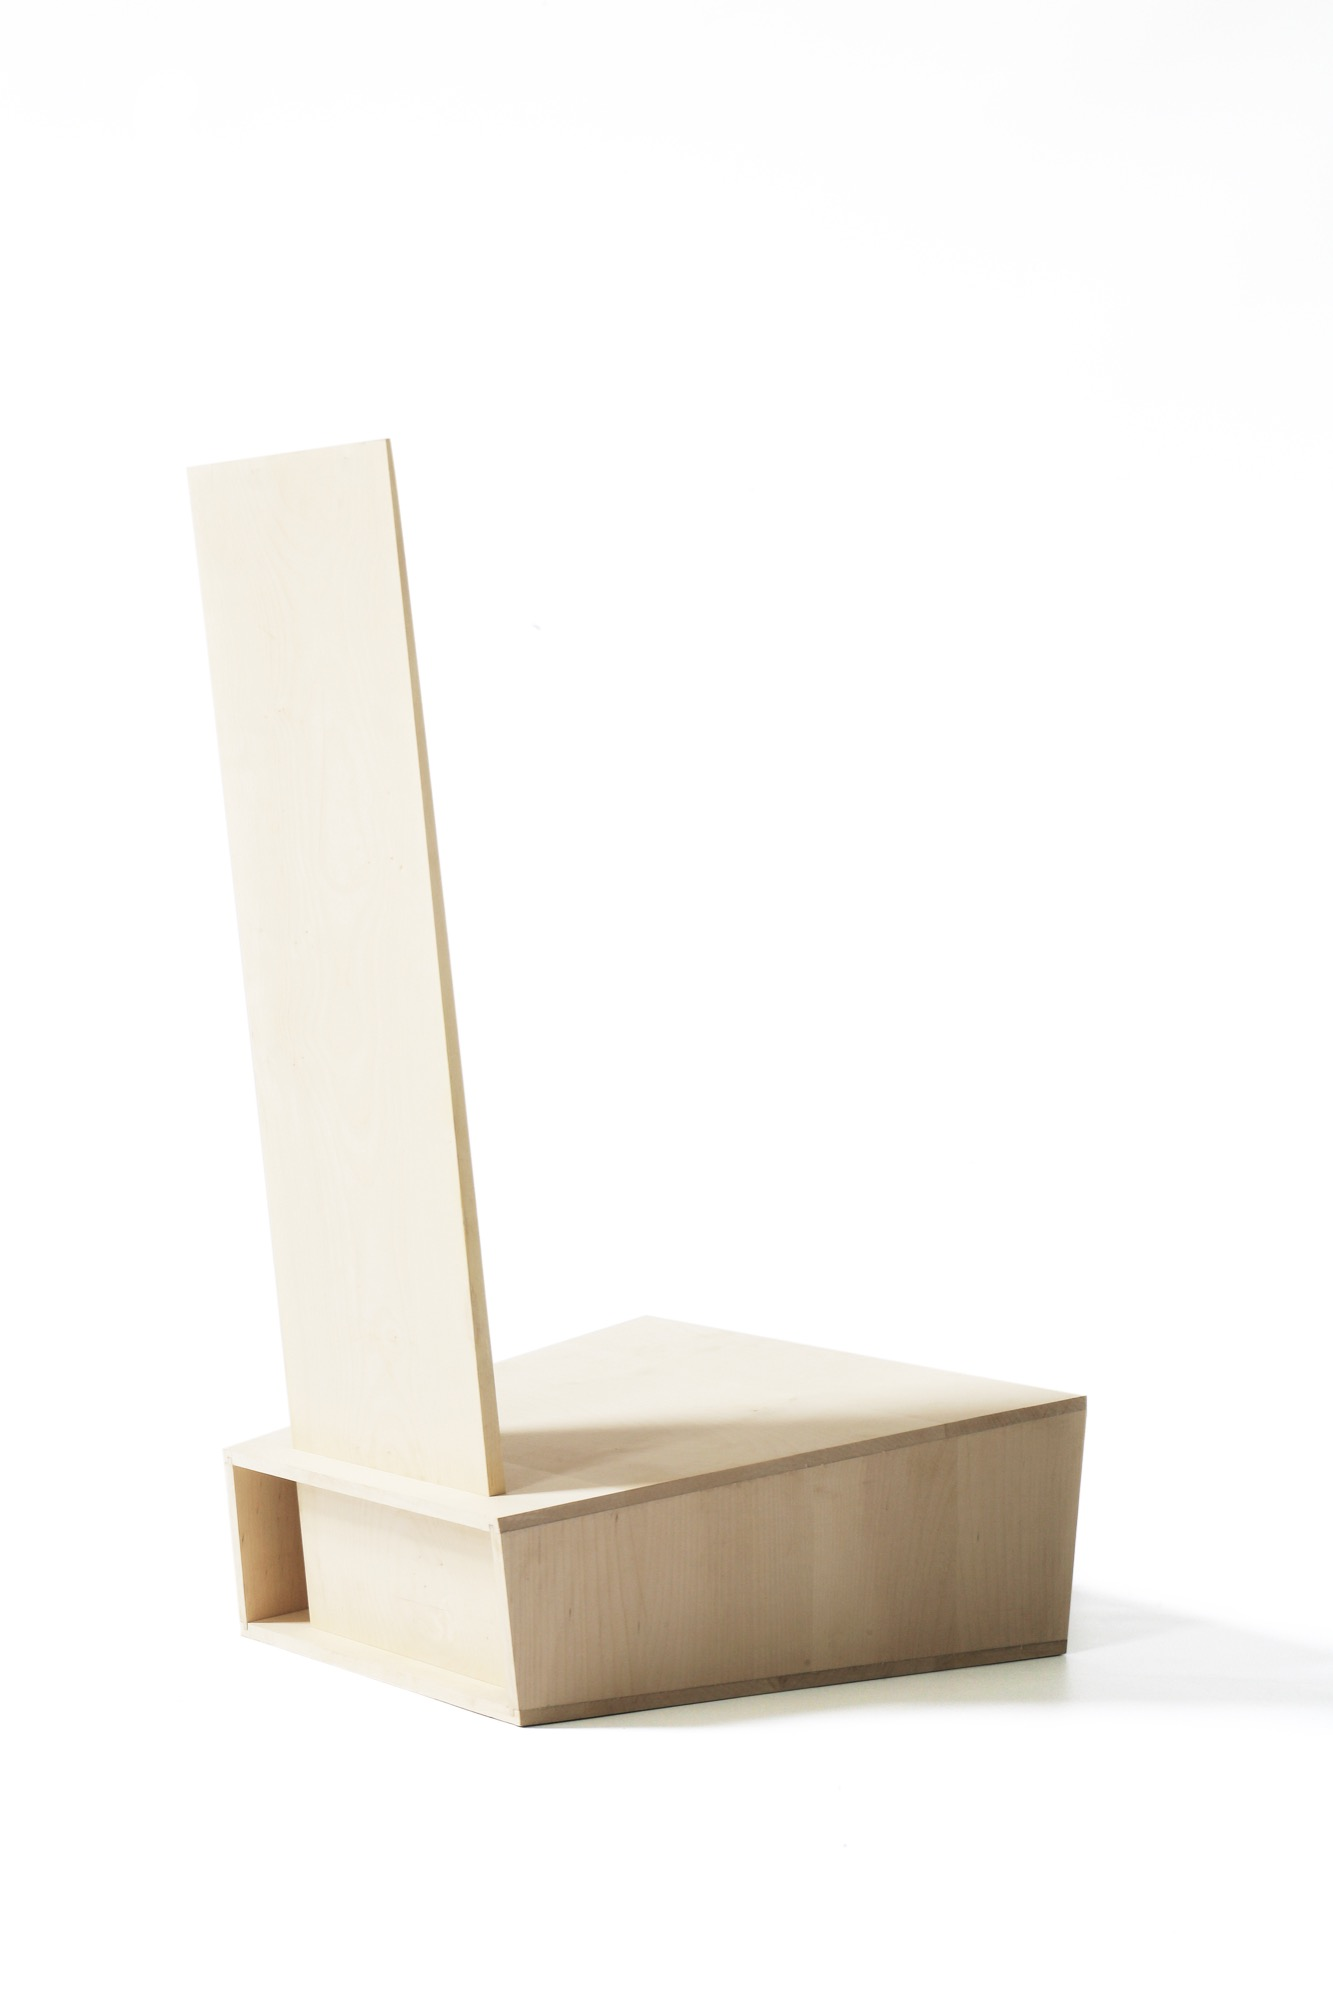 chaise-basse-3